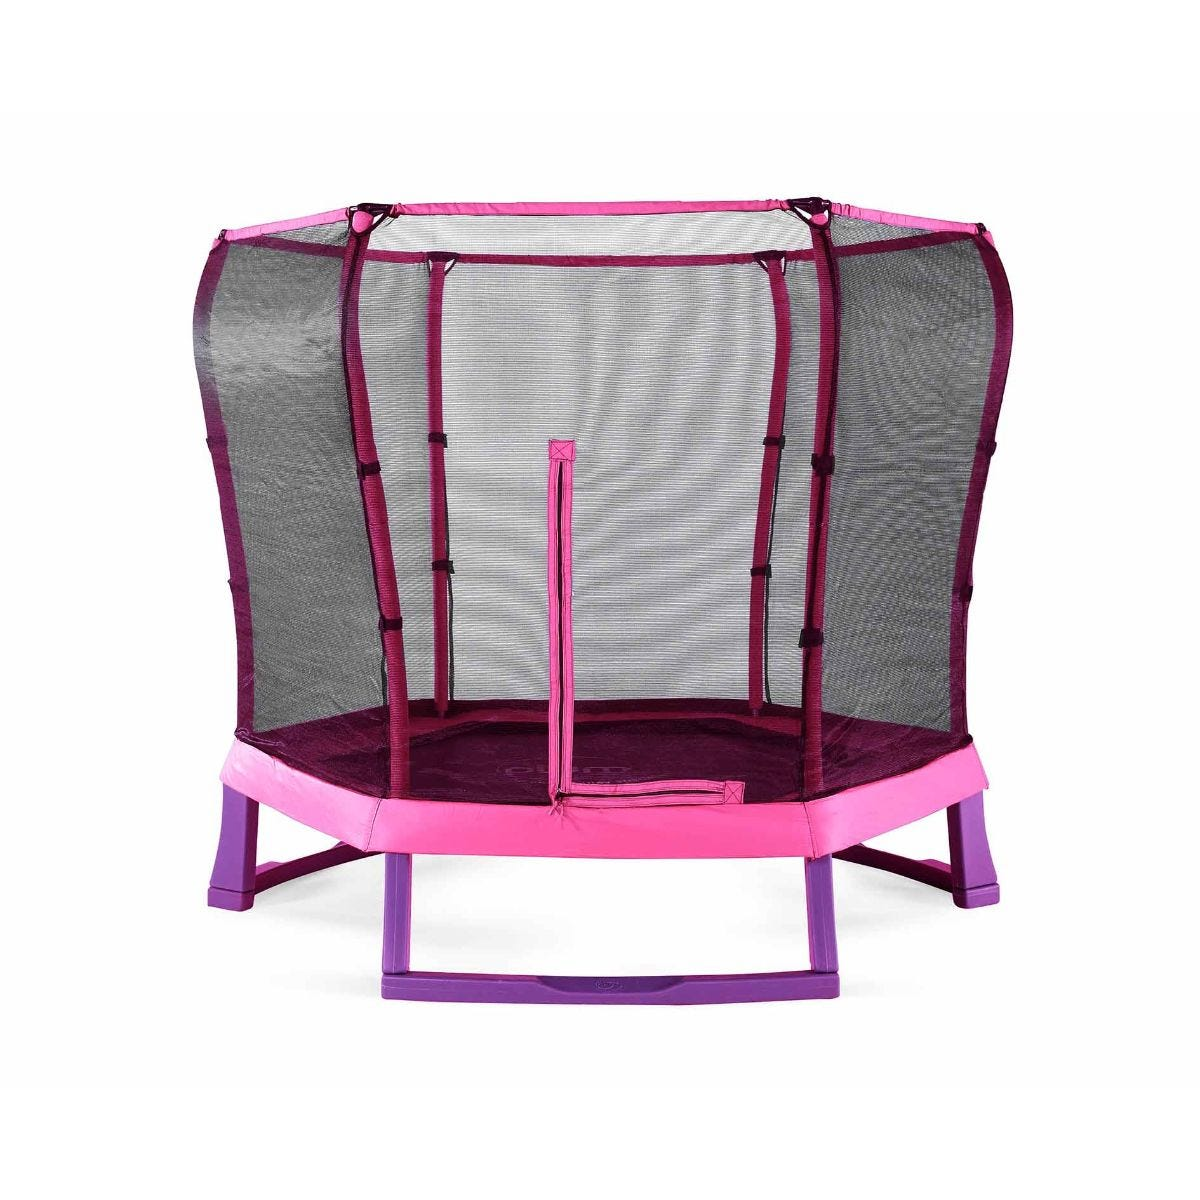 Click to view product details and reviews for Plum Springsafe Junior Trampoline And Enclosure 7ft Pink Purple.